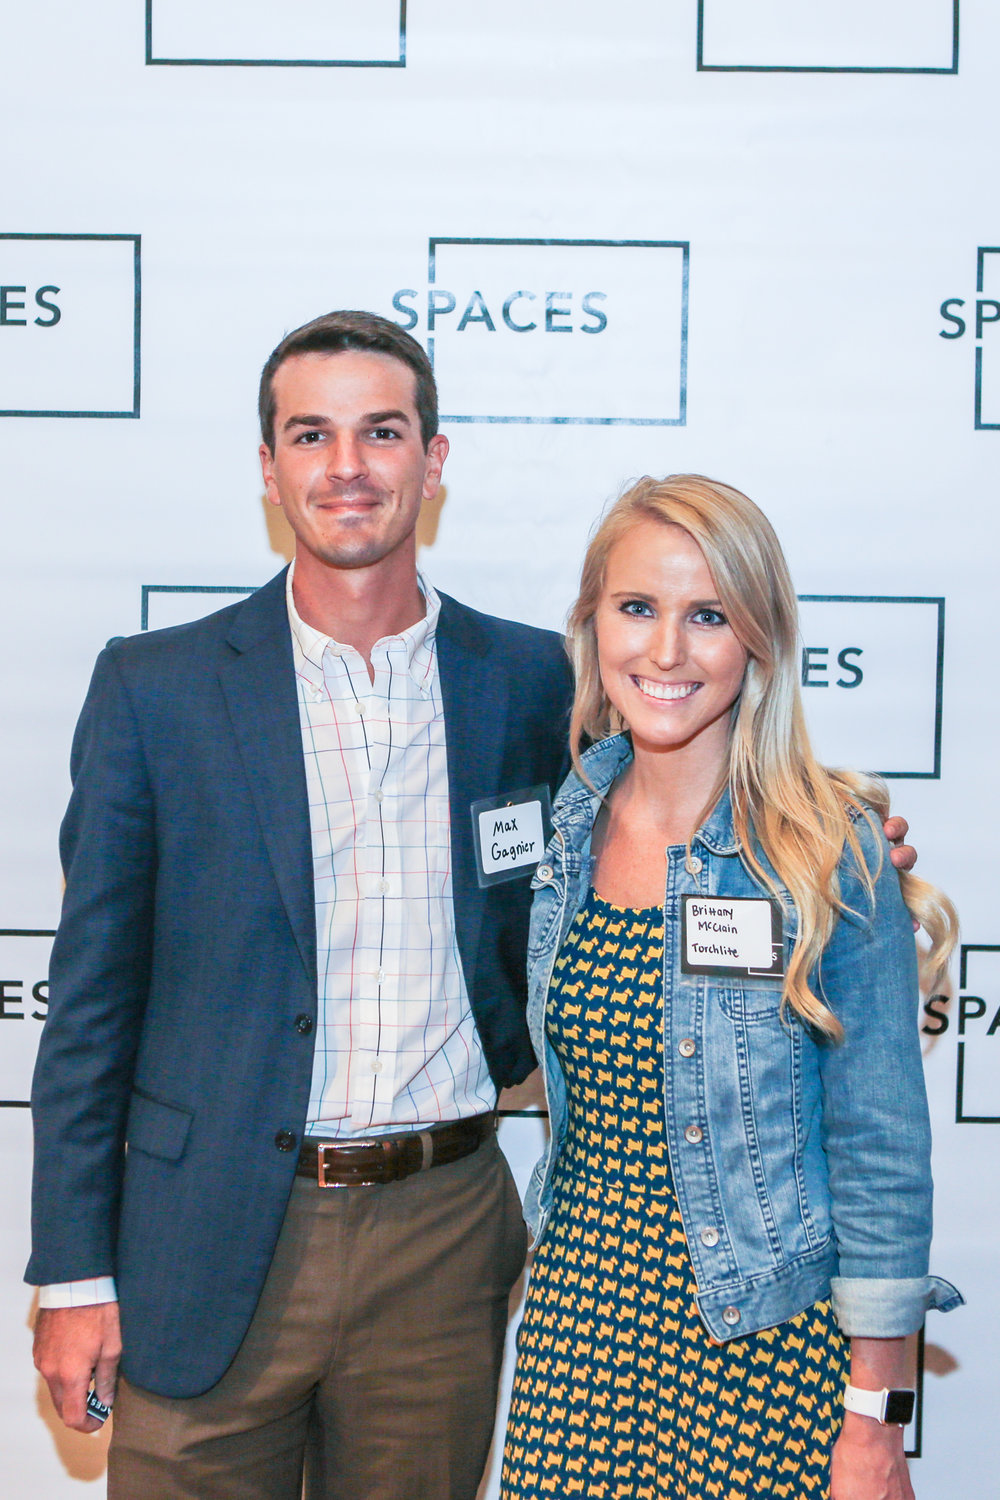 A-Spaces Event-104.jpg